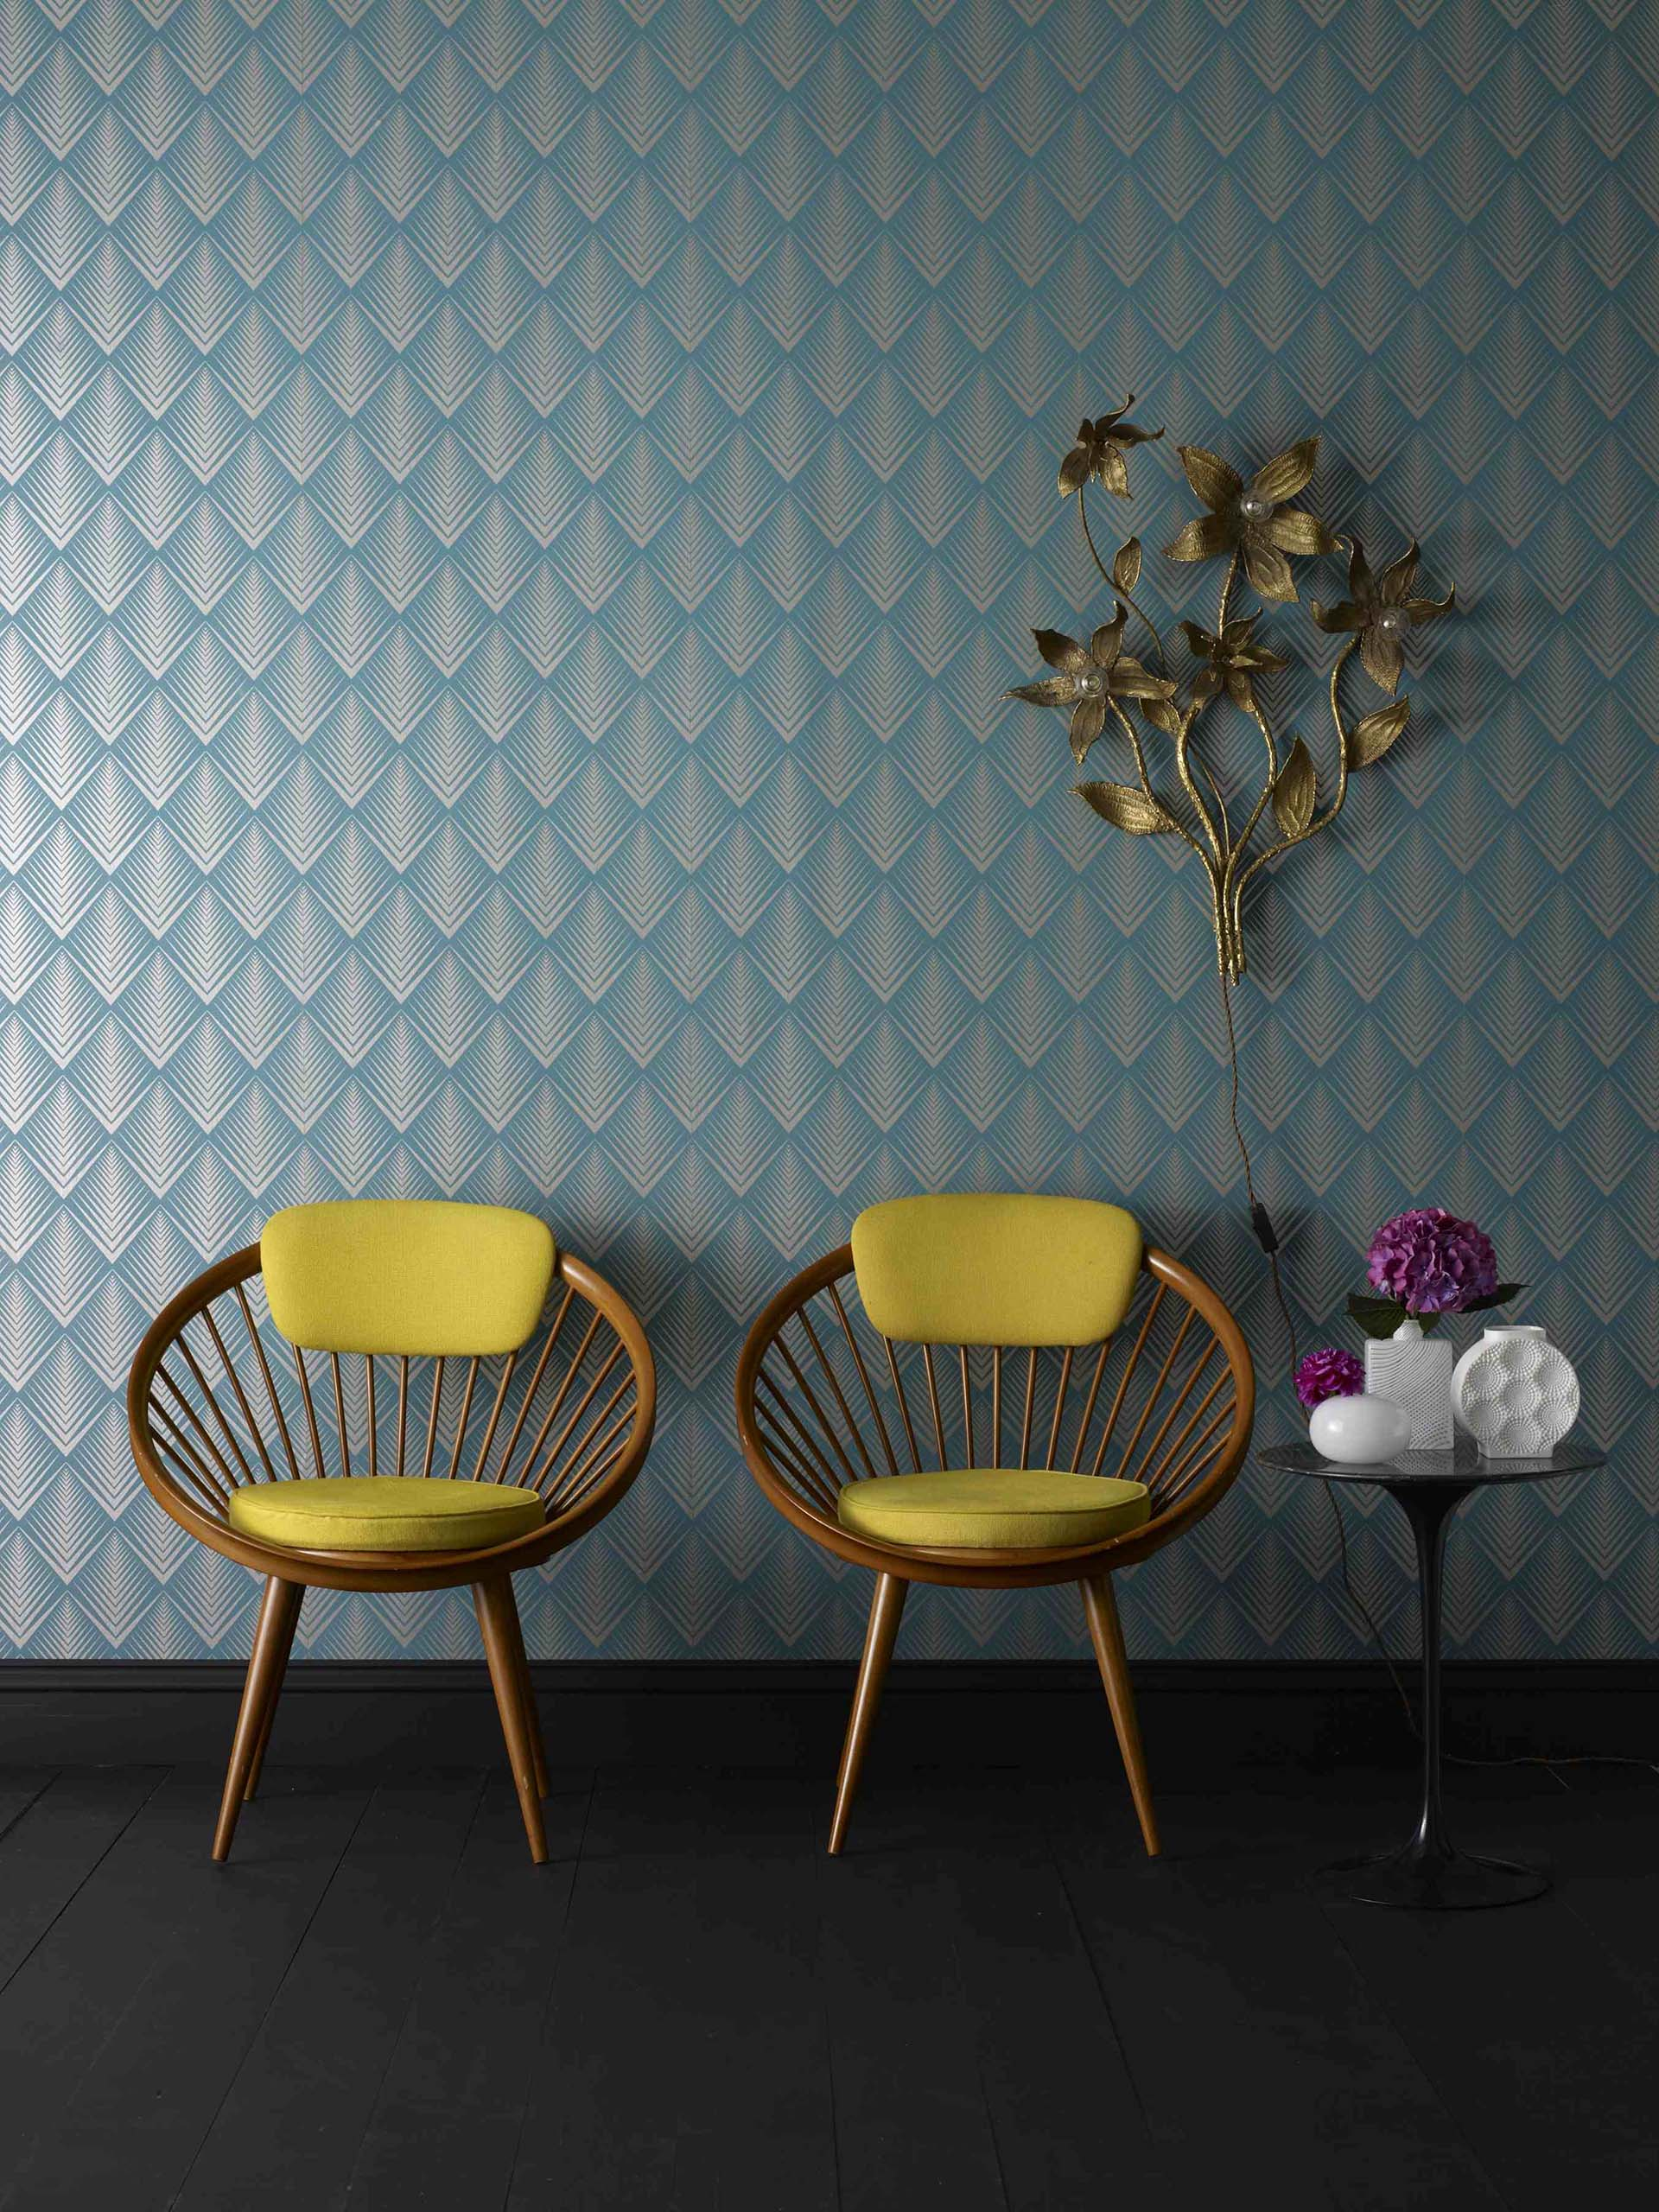 Take 7 Minutes to Understand Why Your Home Needs Removable Wallpapers removable wallpapers Take 7 Minutes to Understand Why Your Home Needs Removable Wallpapers Time to Give a New Look to Your Home Bar W These Retro Wallpapers 4